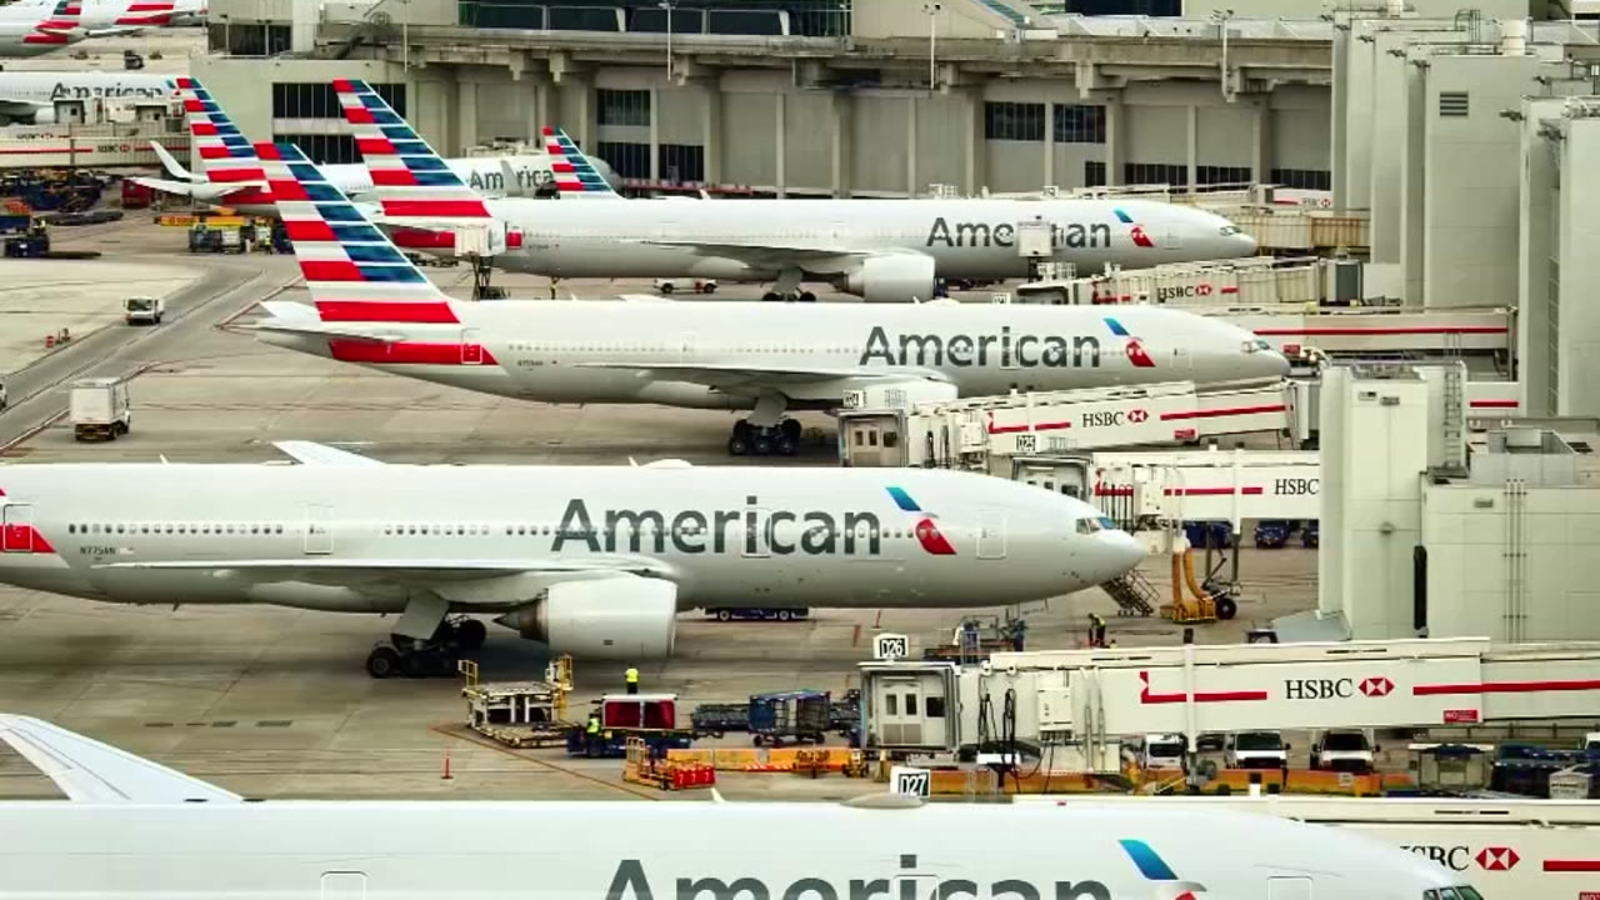 American Airlines Will Award Extra Miles For Passenger